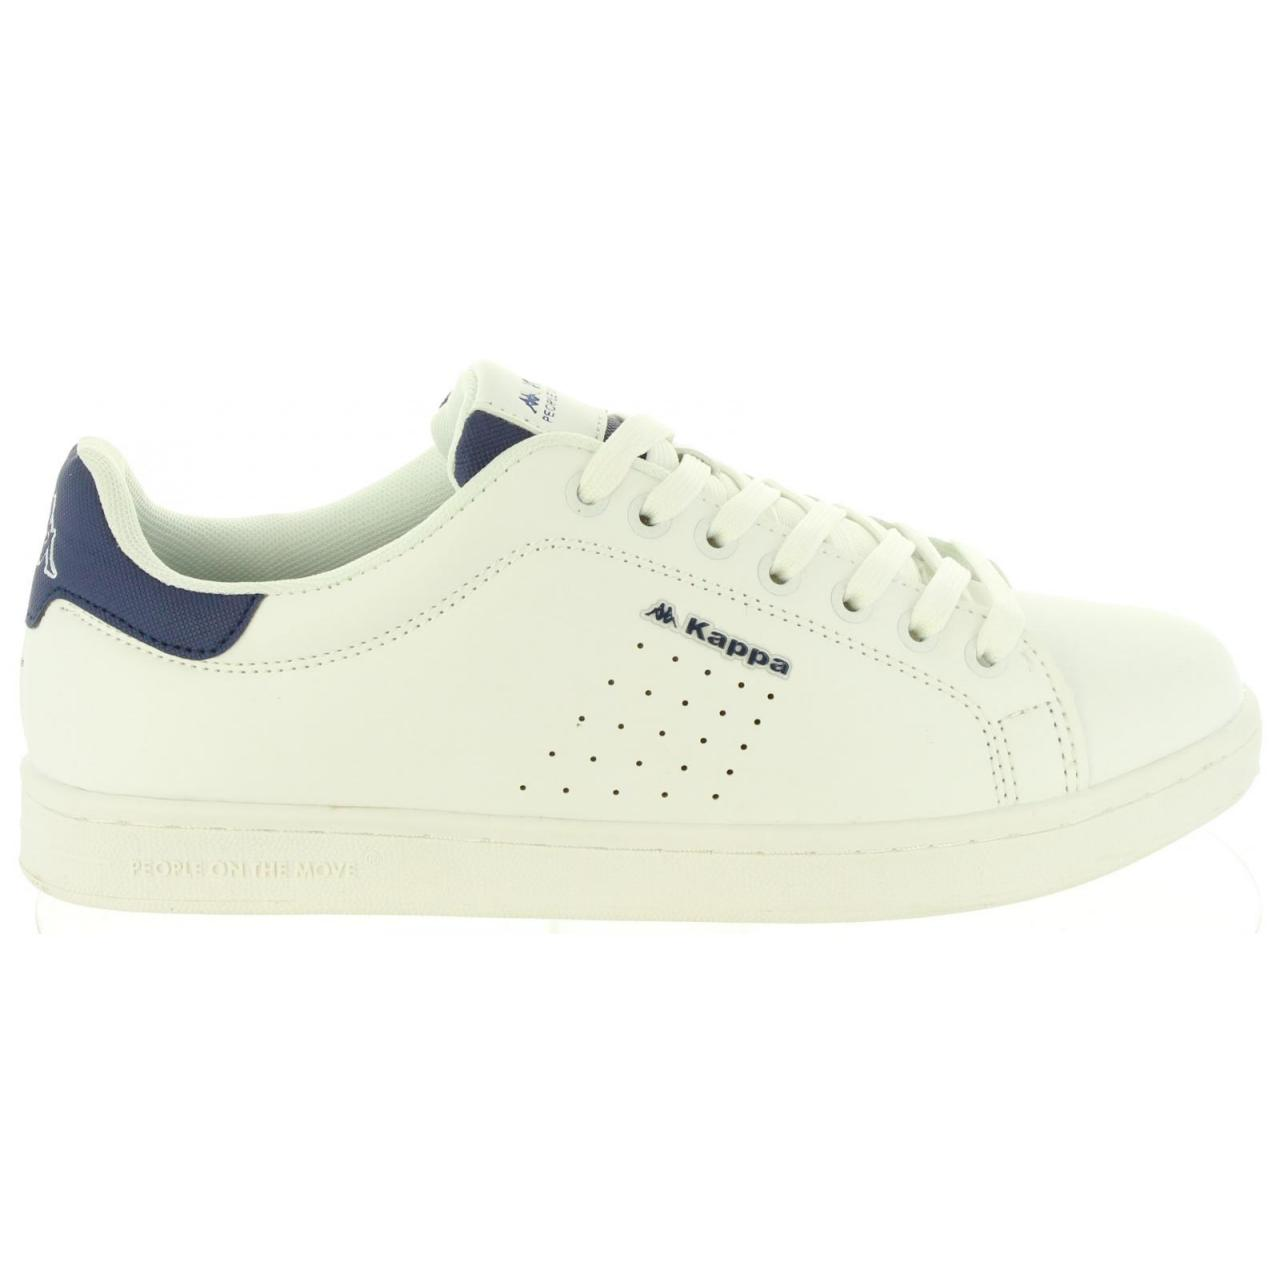 shoes Sports 993 PALAVELA 3031SM0 WHITE man KAPPA SzqOw0TZ